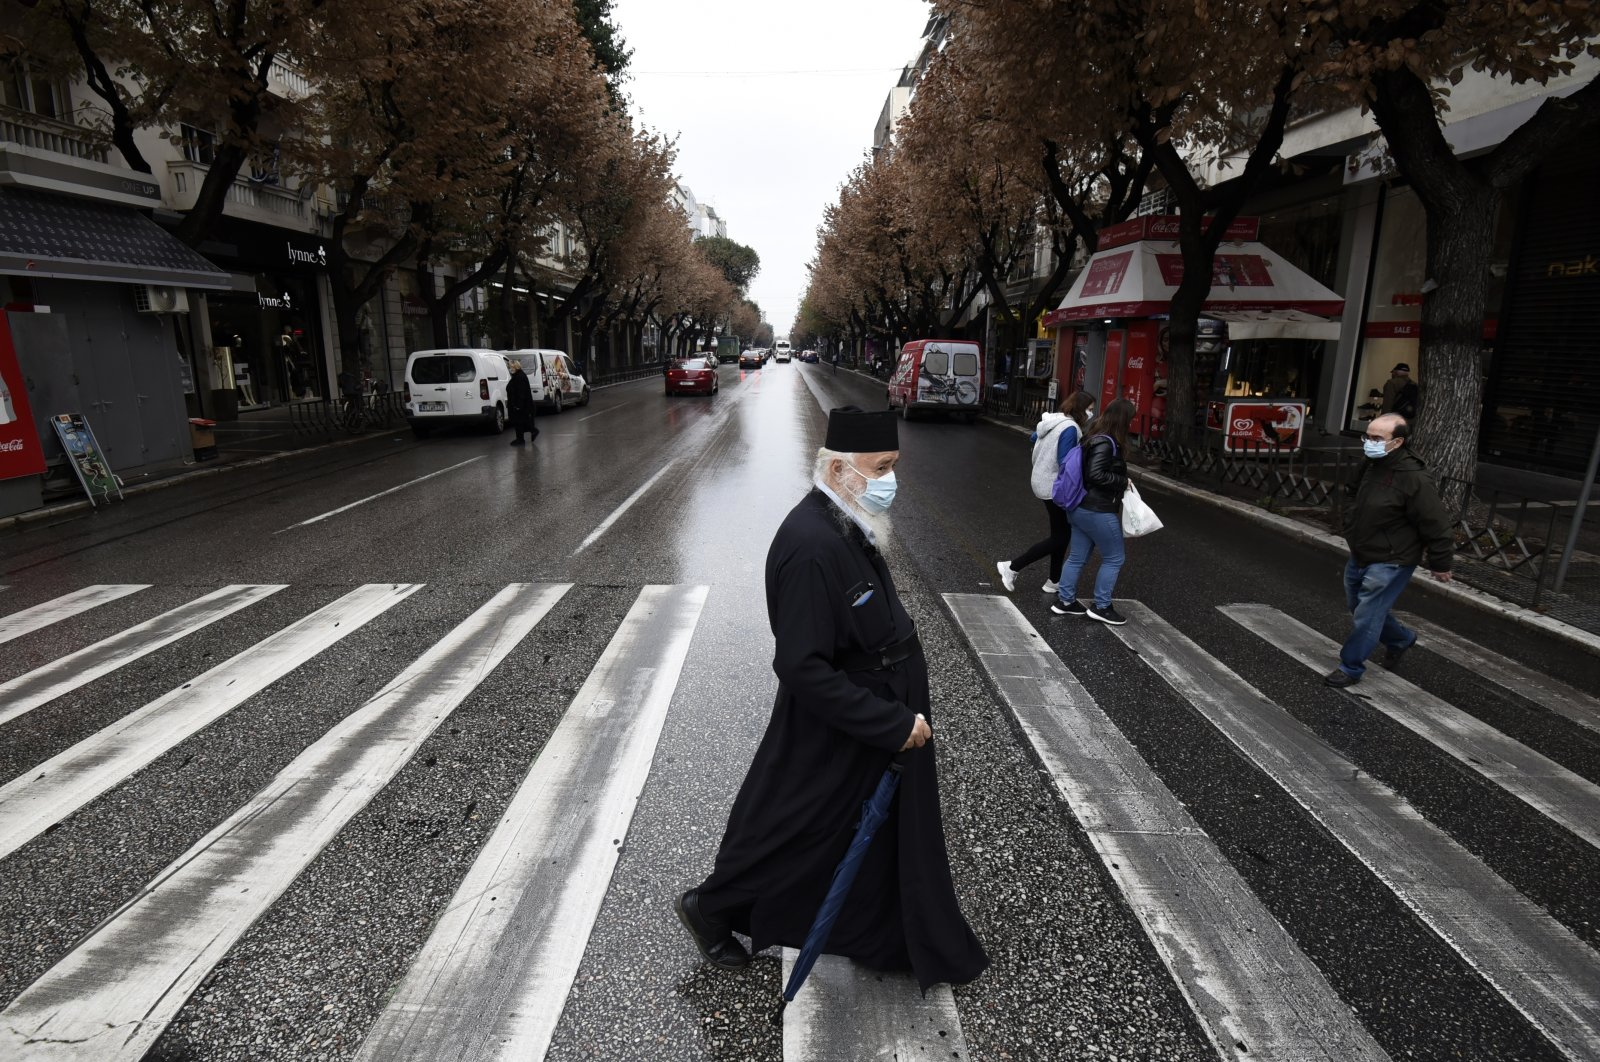 A Greek orthodox priest wearing a face mask to protect against the spread of the coronavirus, walks during the lockdown to contain the spread of COVID-19, on Tsimiski Street, Thessaloniki's main shopping area, northern Greece, Tuesday, Nov. 3, 2020. (AP Photo)